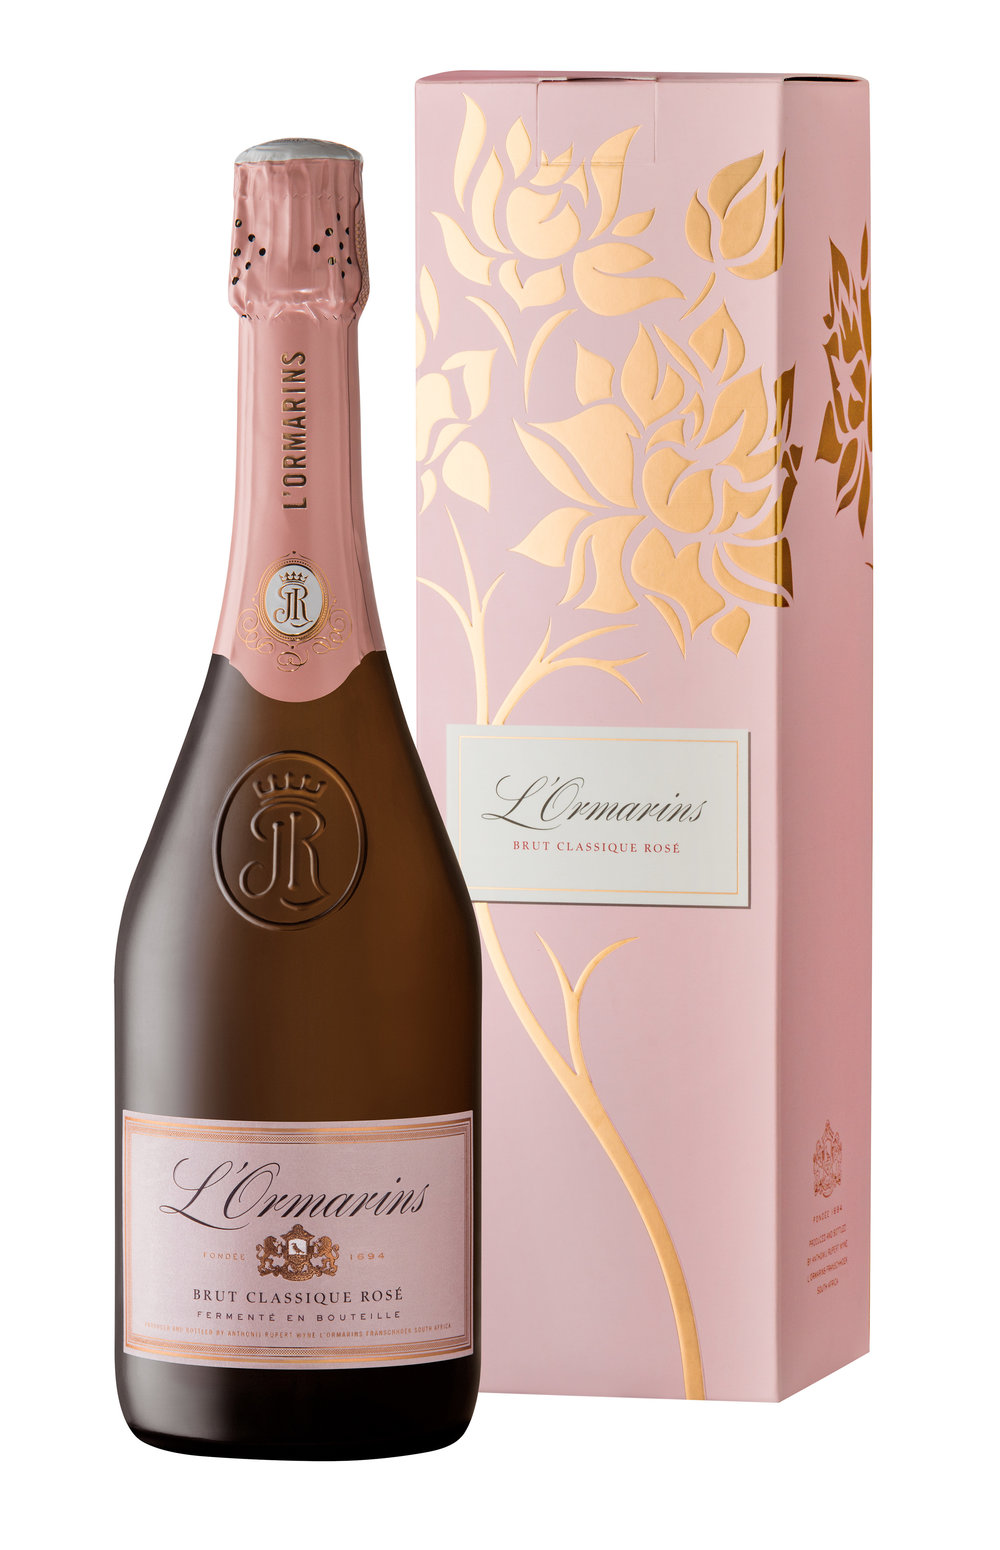 L'Ormarins Brut Classique Rose (NewPackaging) With Box-1.jpg